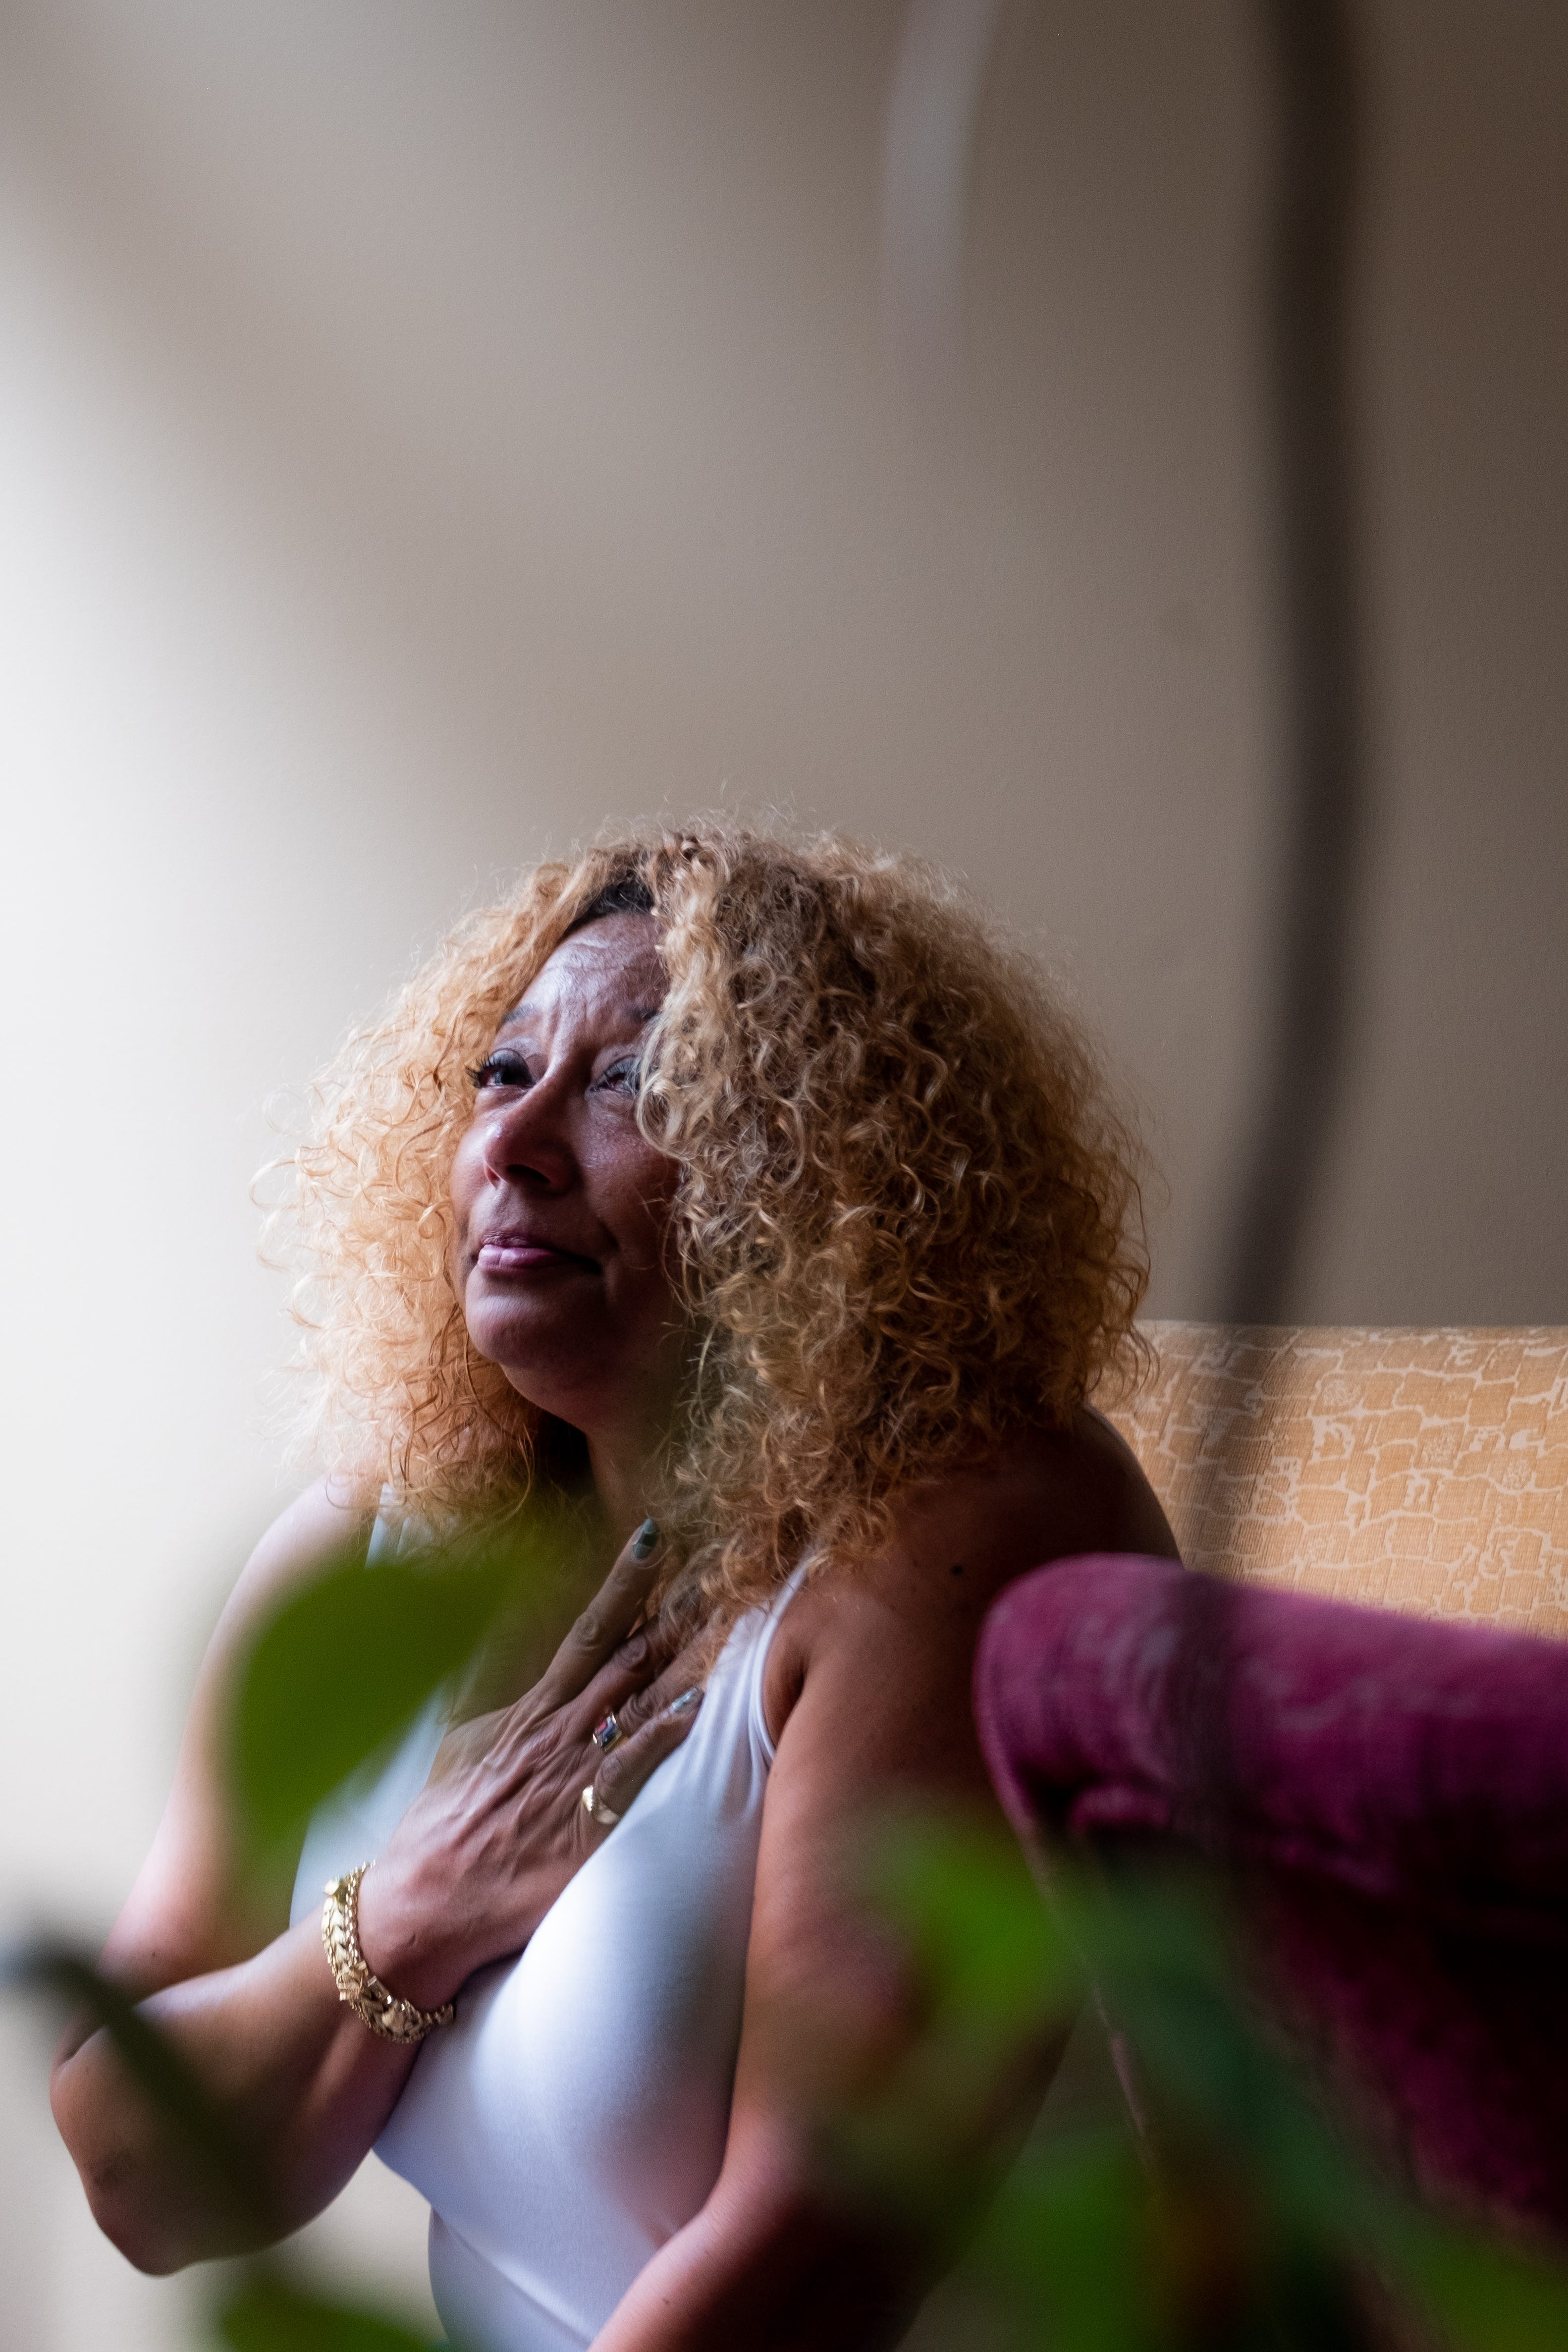 Gina Jere takes a moment to breathe as she poses for a photograph inside her home in Orland Park, Ill.